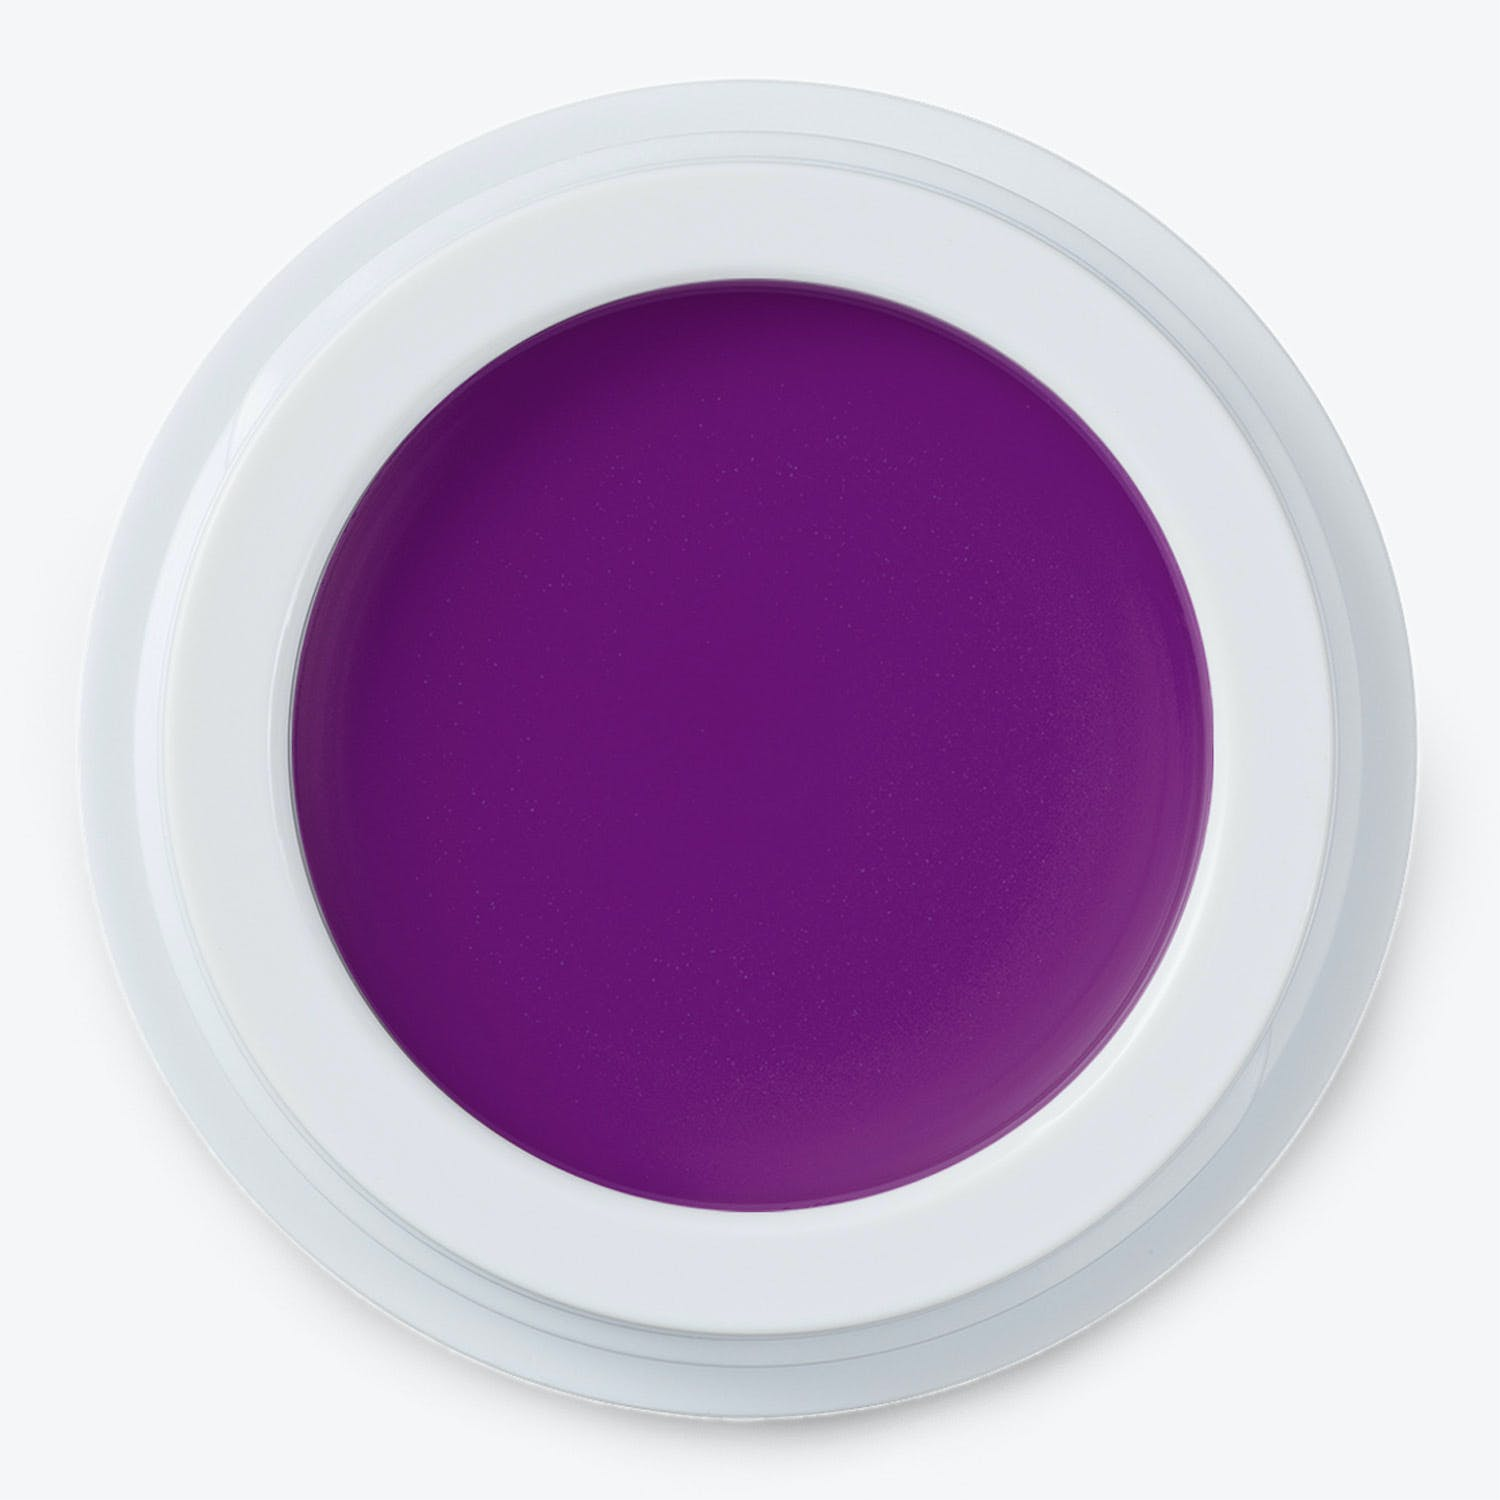 Product Image - Manasi 7 All Over Color Heliotrope Violet